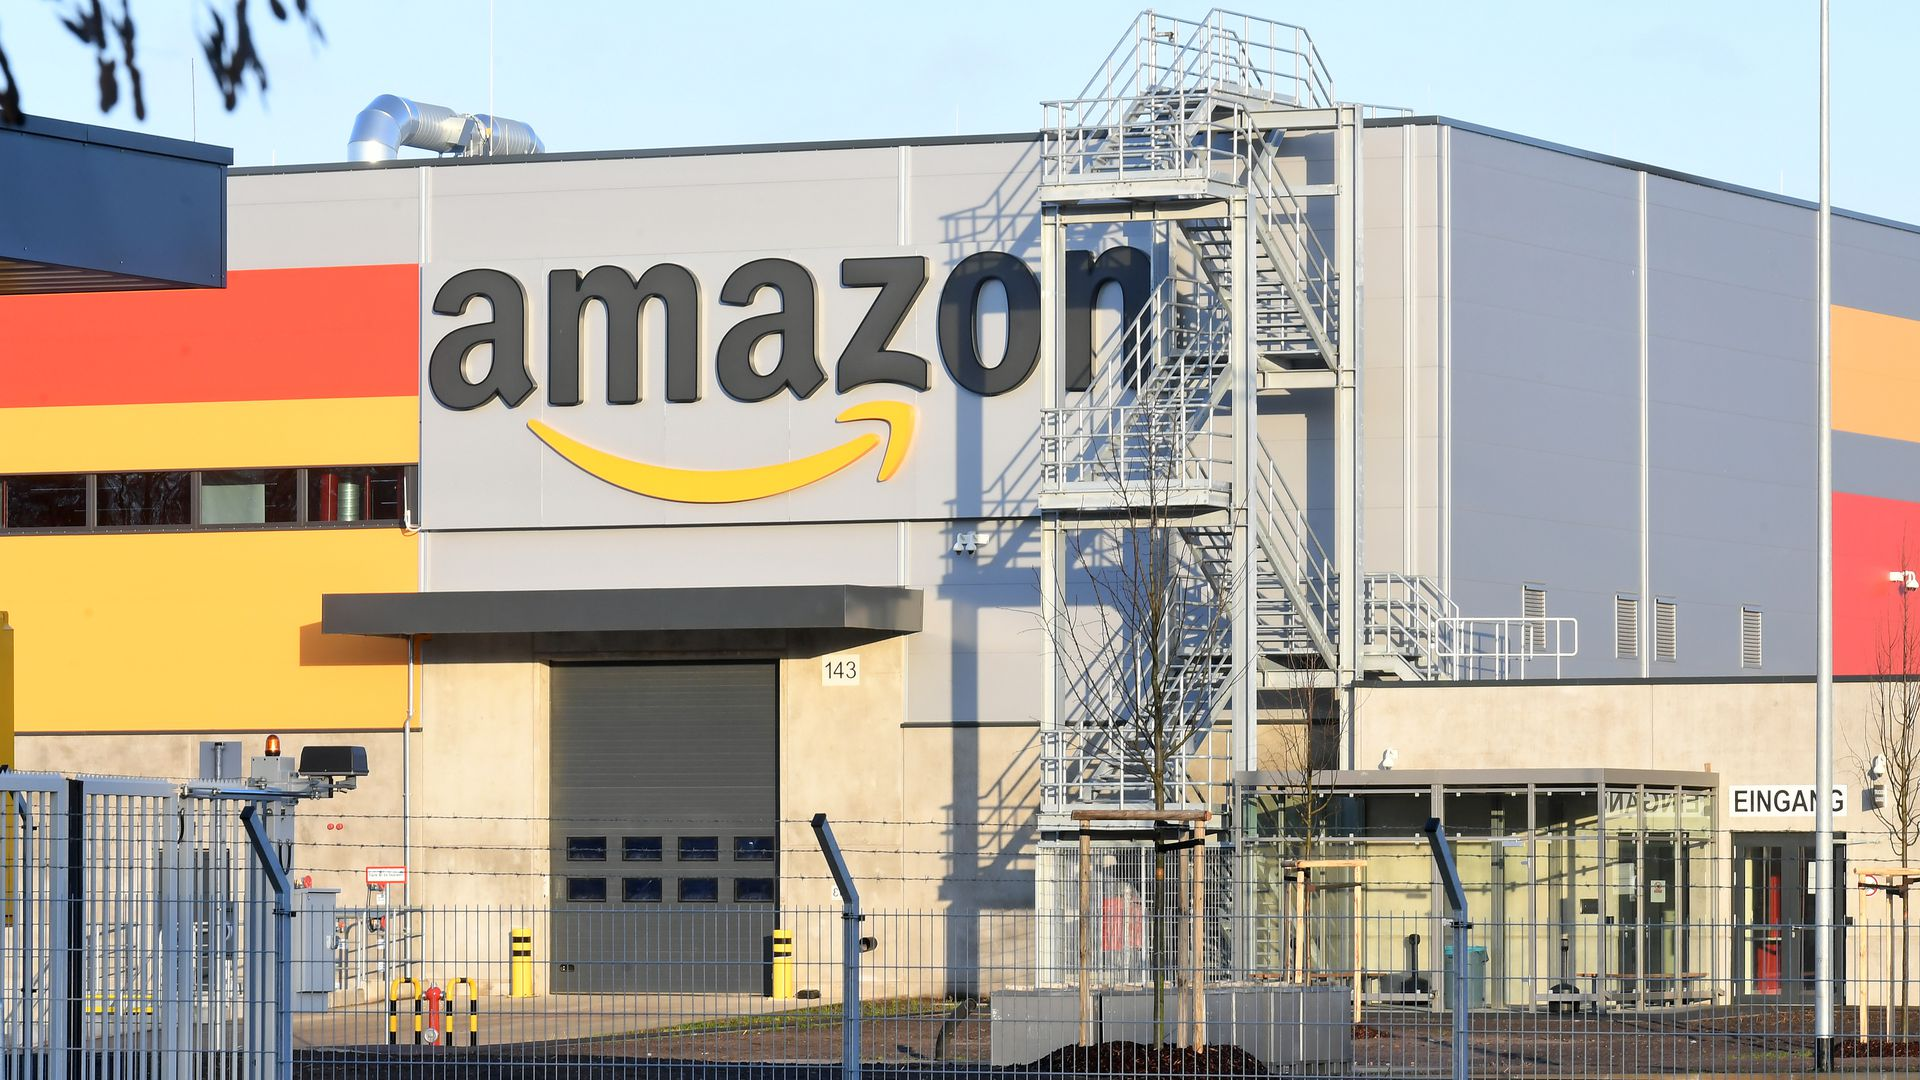 Amazon distribution center building exterior with logo